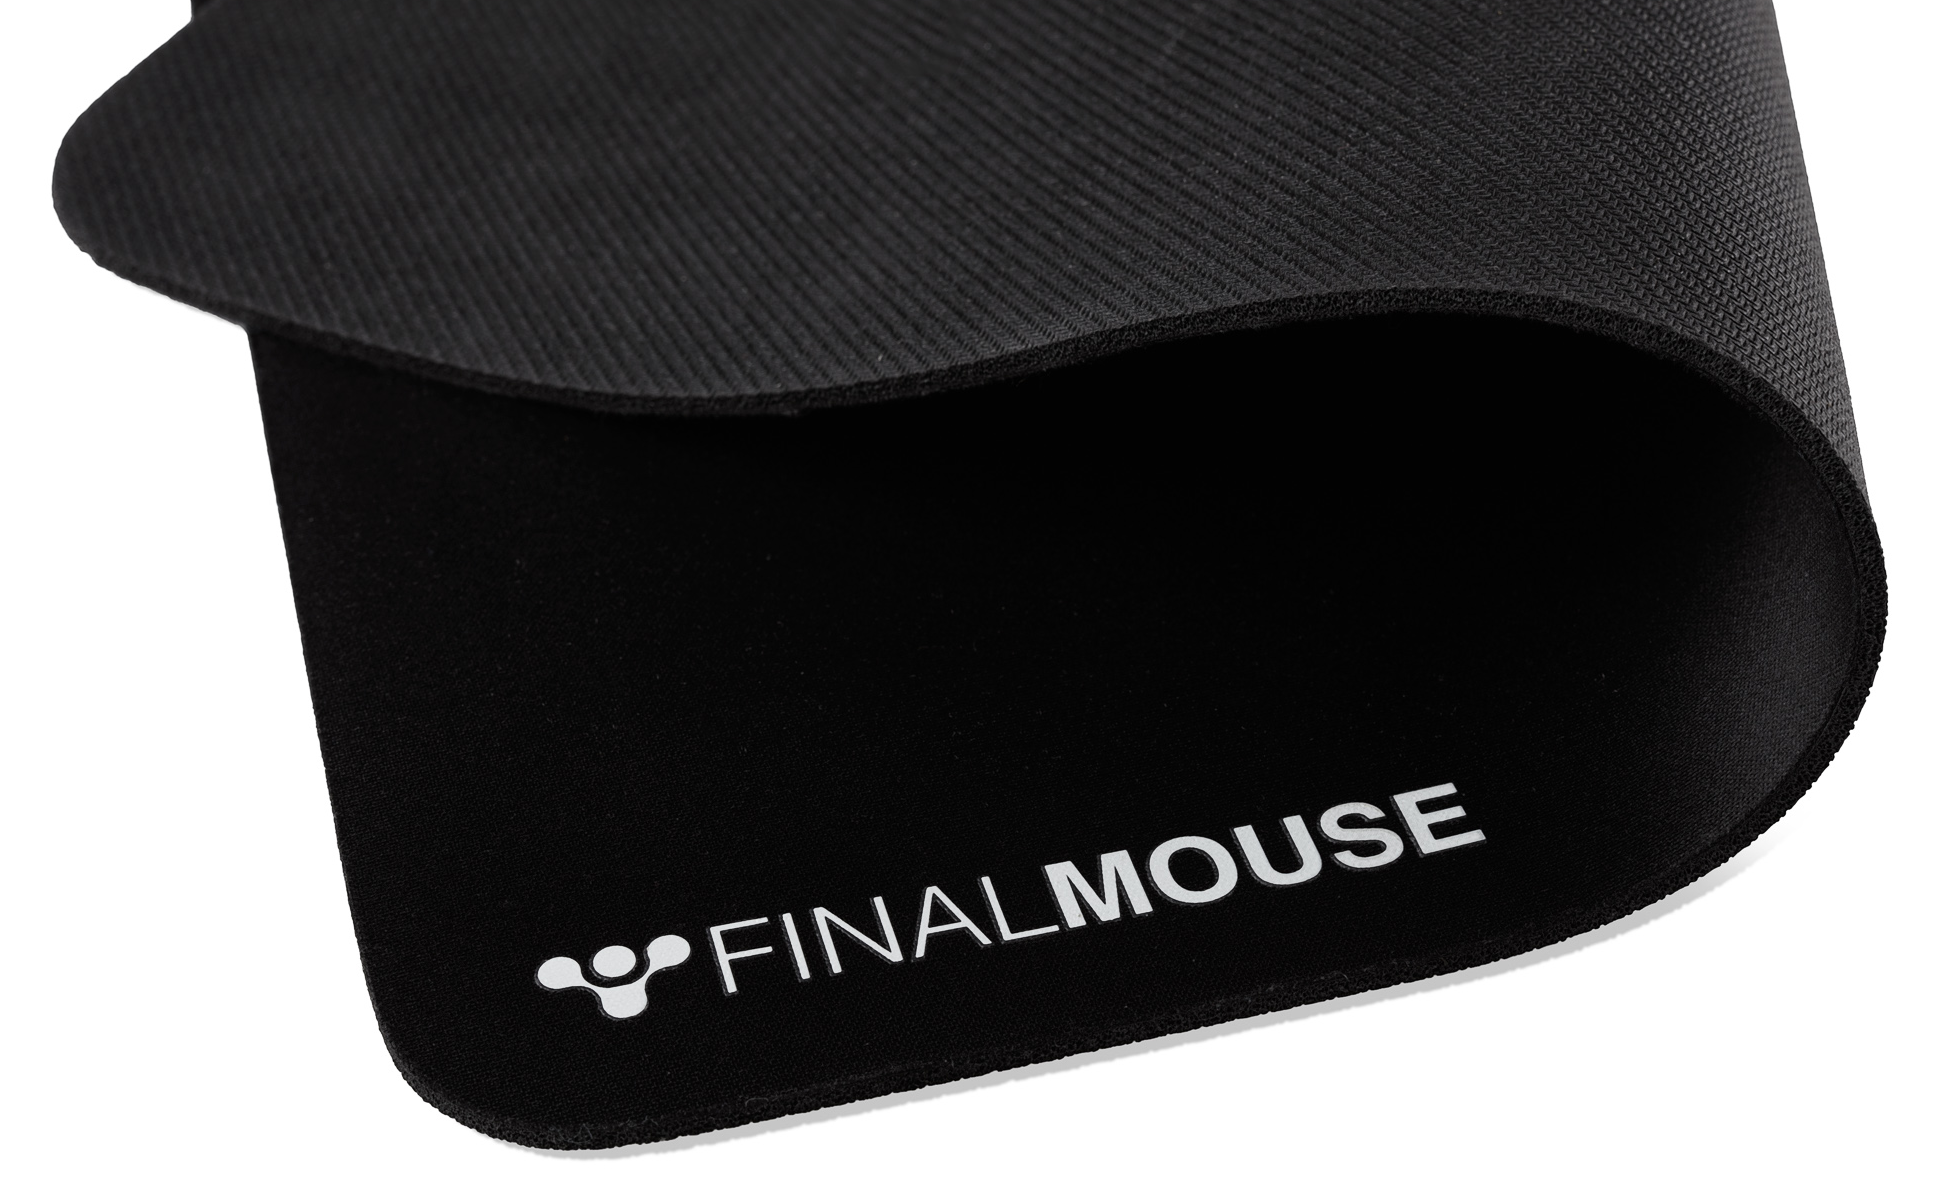 Sponsored] Finalmouse Ergo V2 & Mouse pad overview/Review